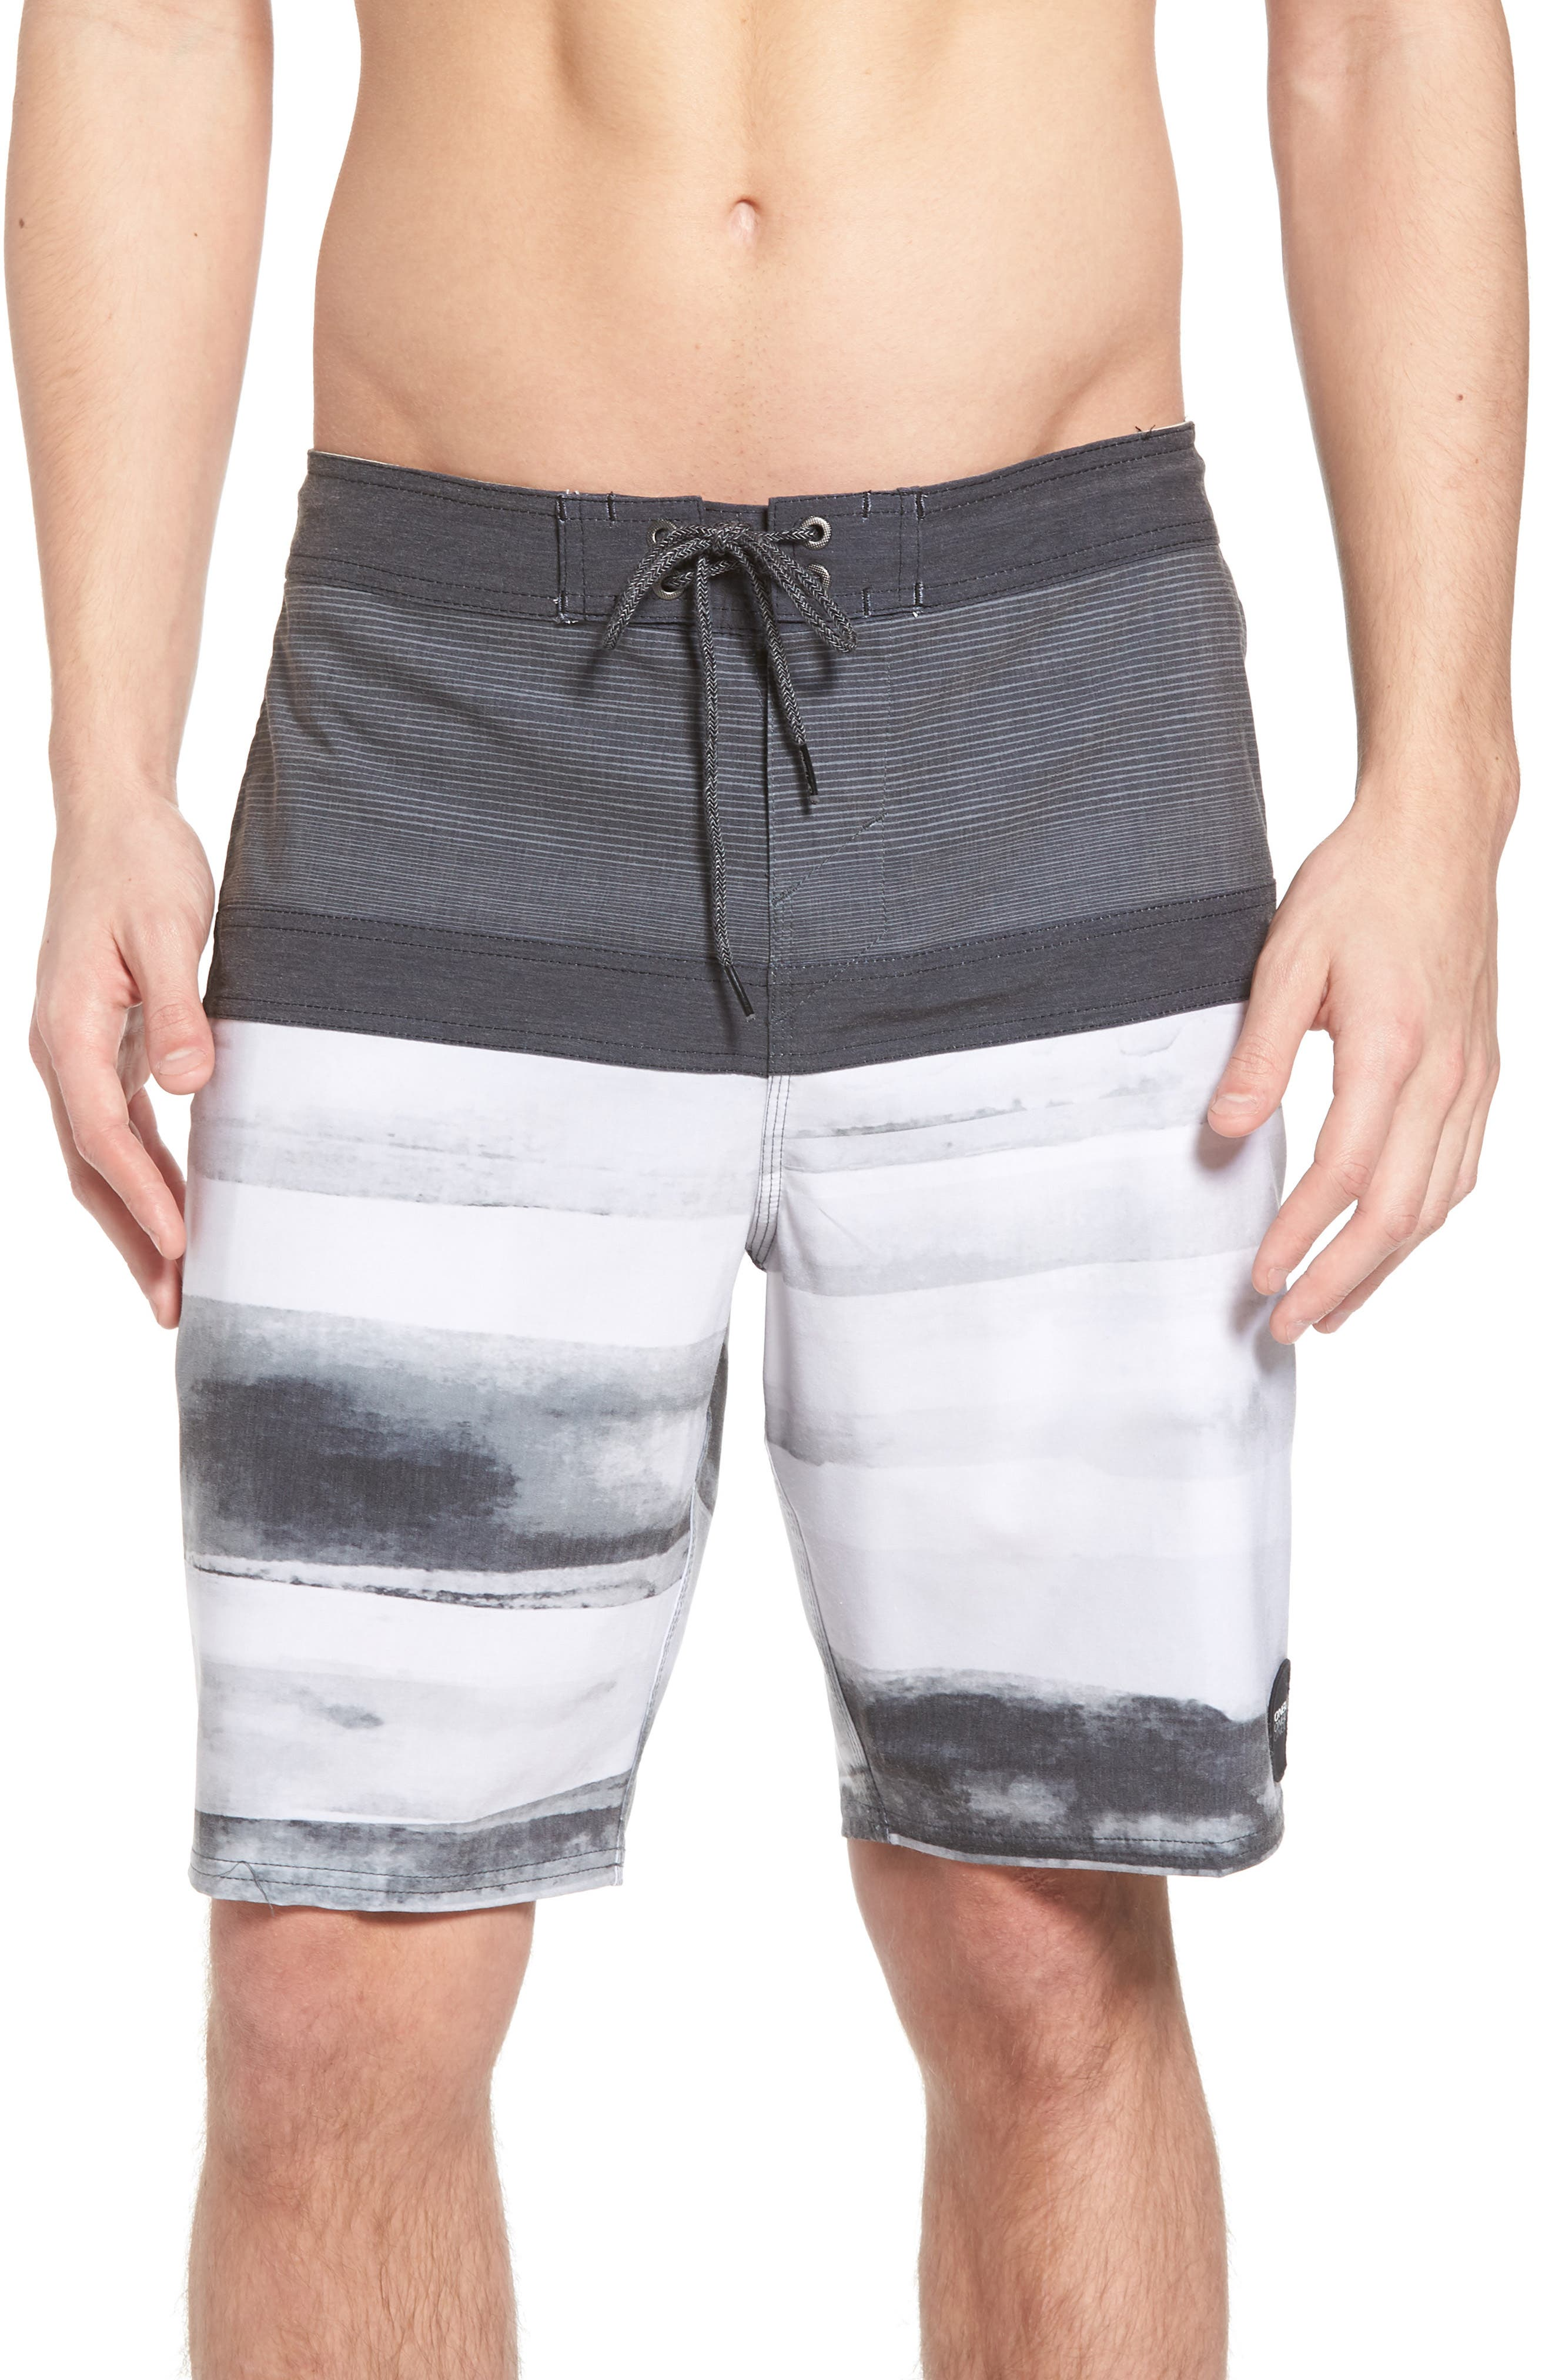 Breaker Cruzer Board Shorts,                         Main,                         color, 001